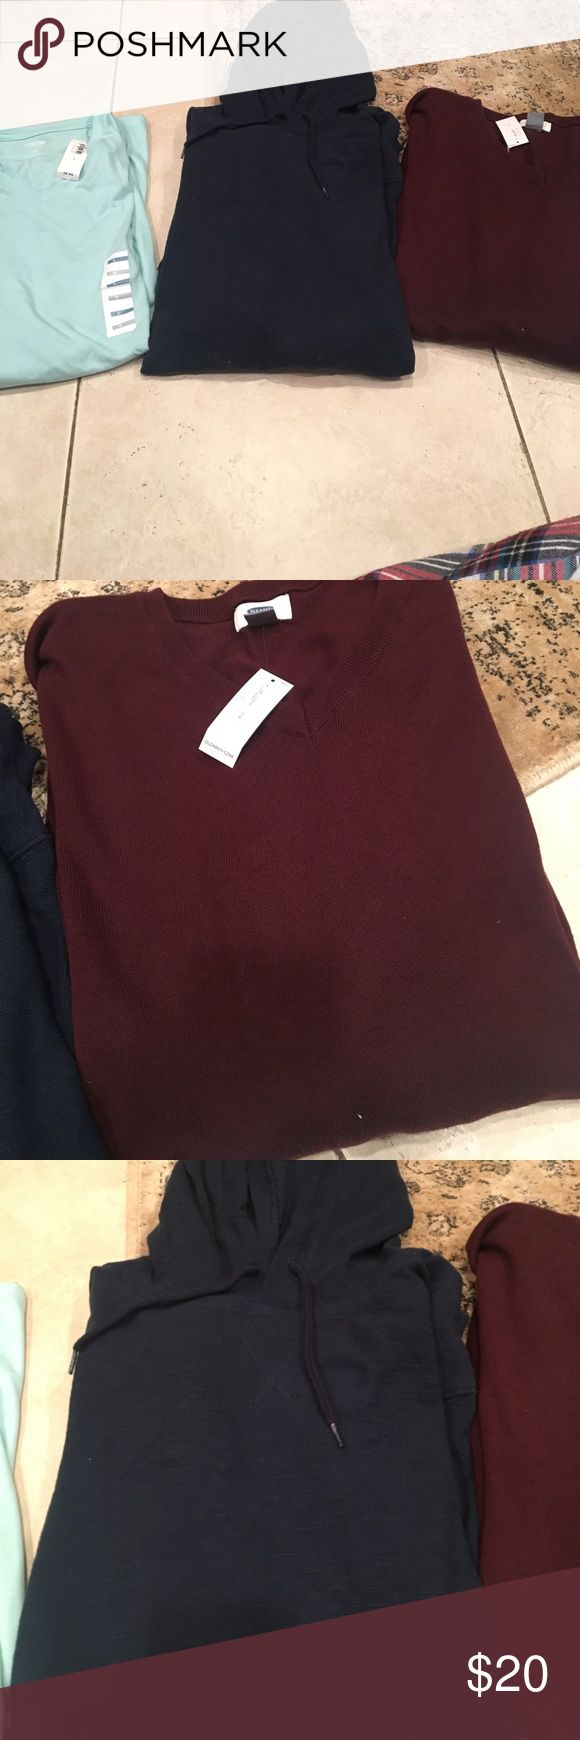 Men's old navy bundle NWT size large Old navy t shirt, pull over hoodie (no tag) and v neck sweater Old Navy Shirts